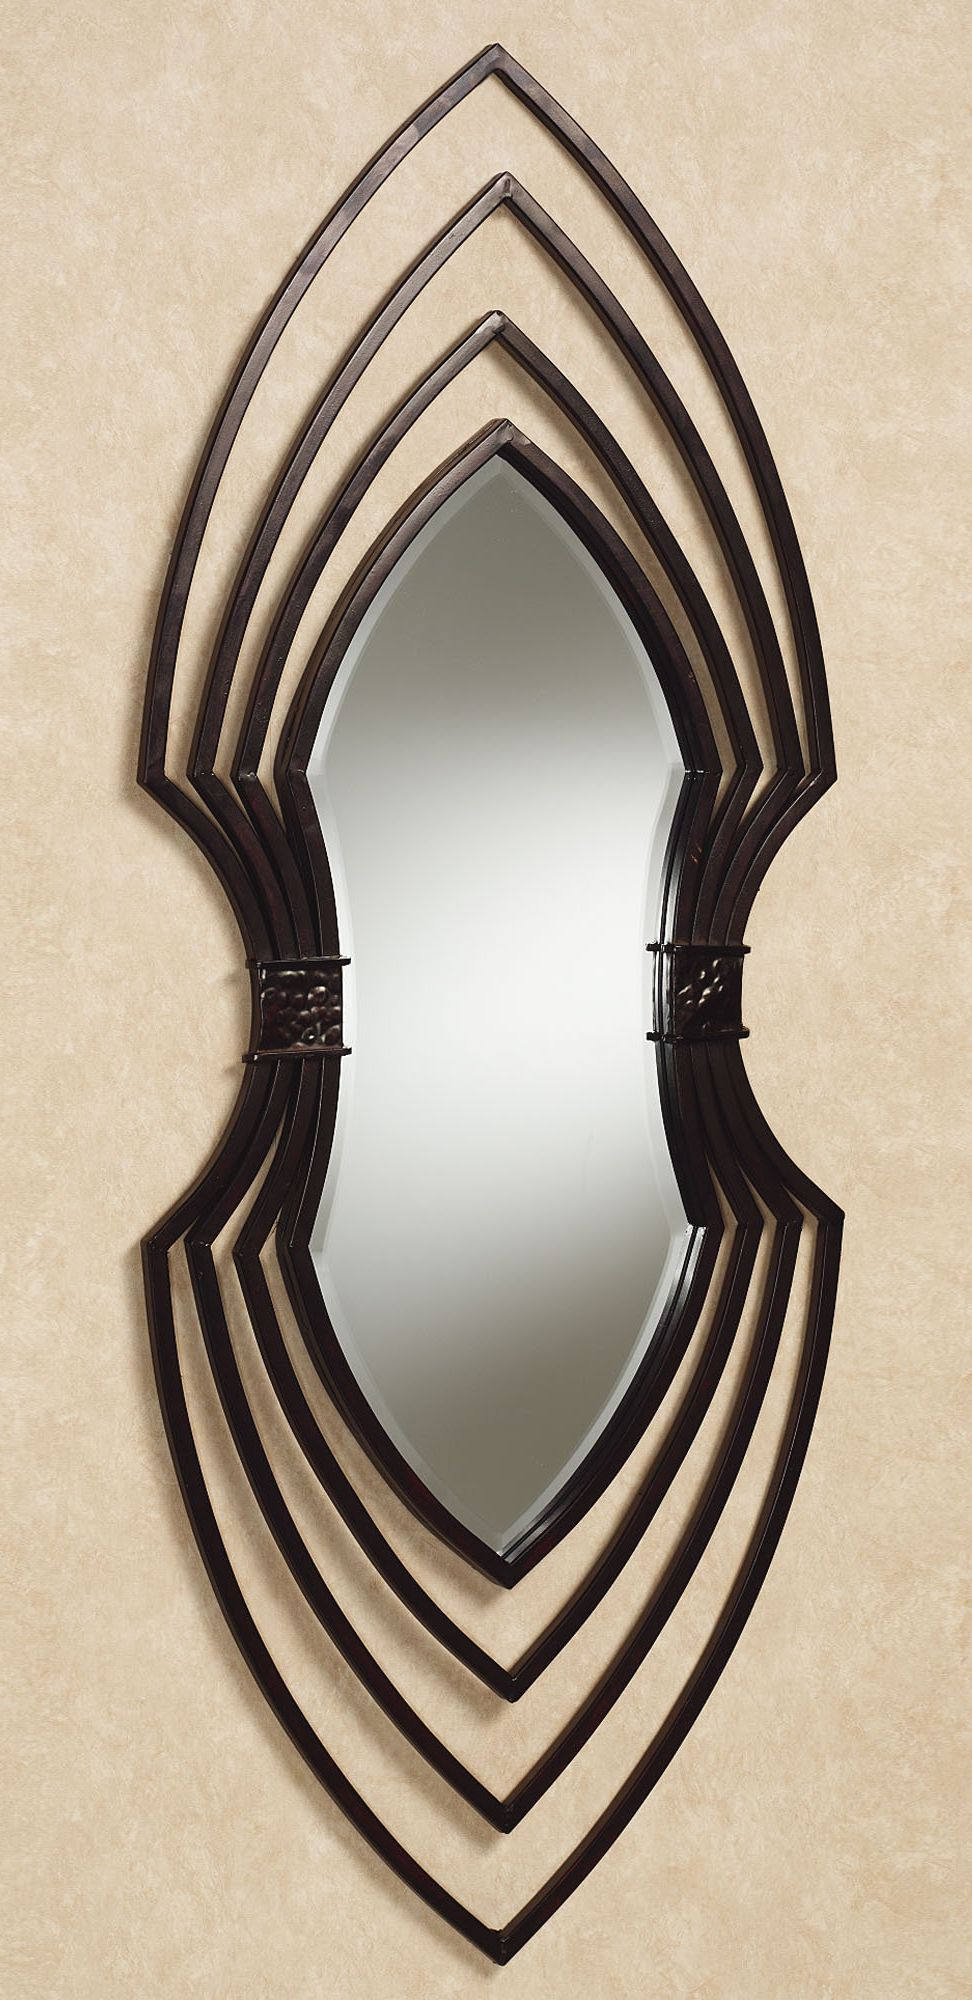 Del Rio Wall Mirror Animal Prints